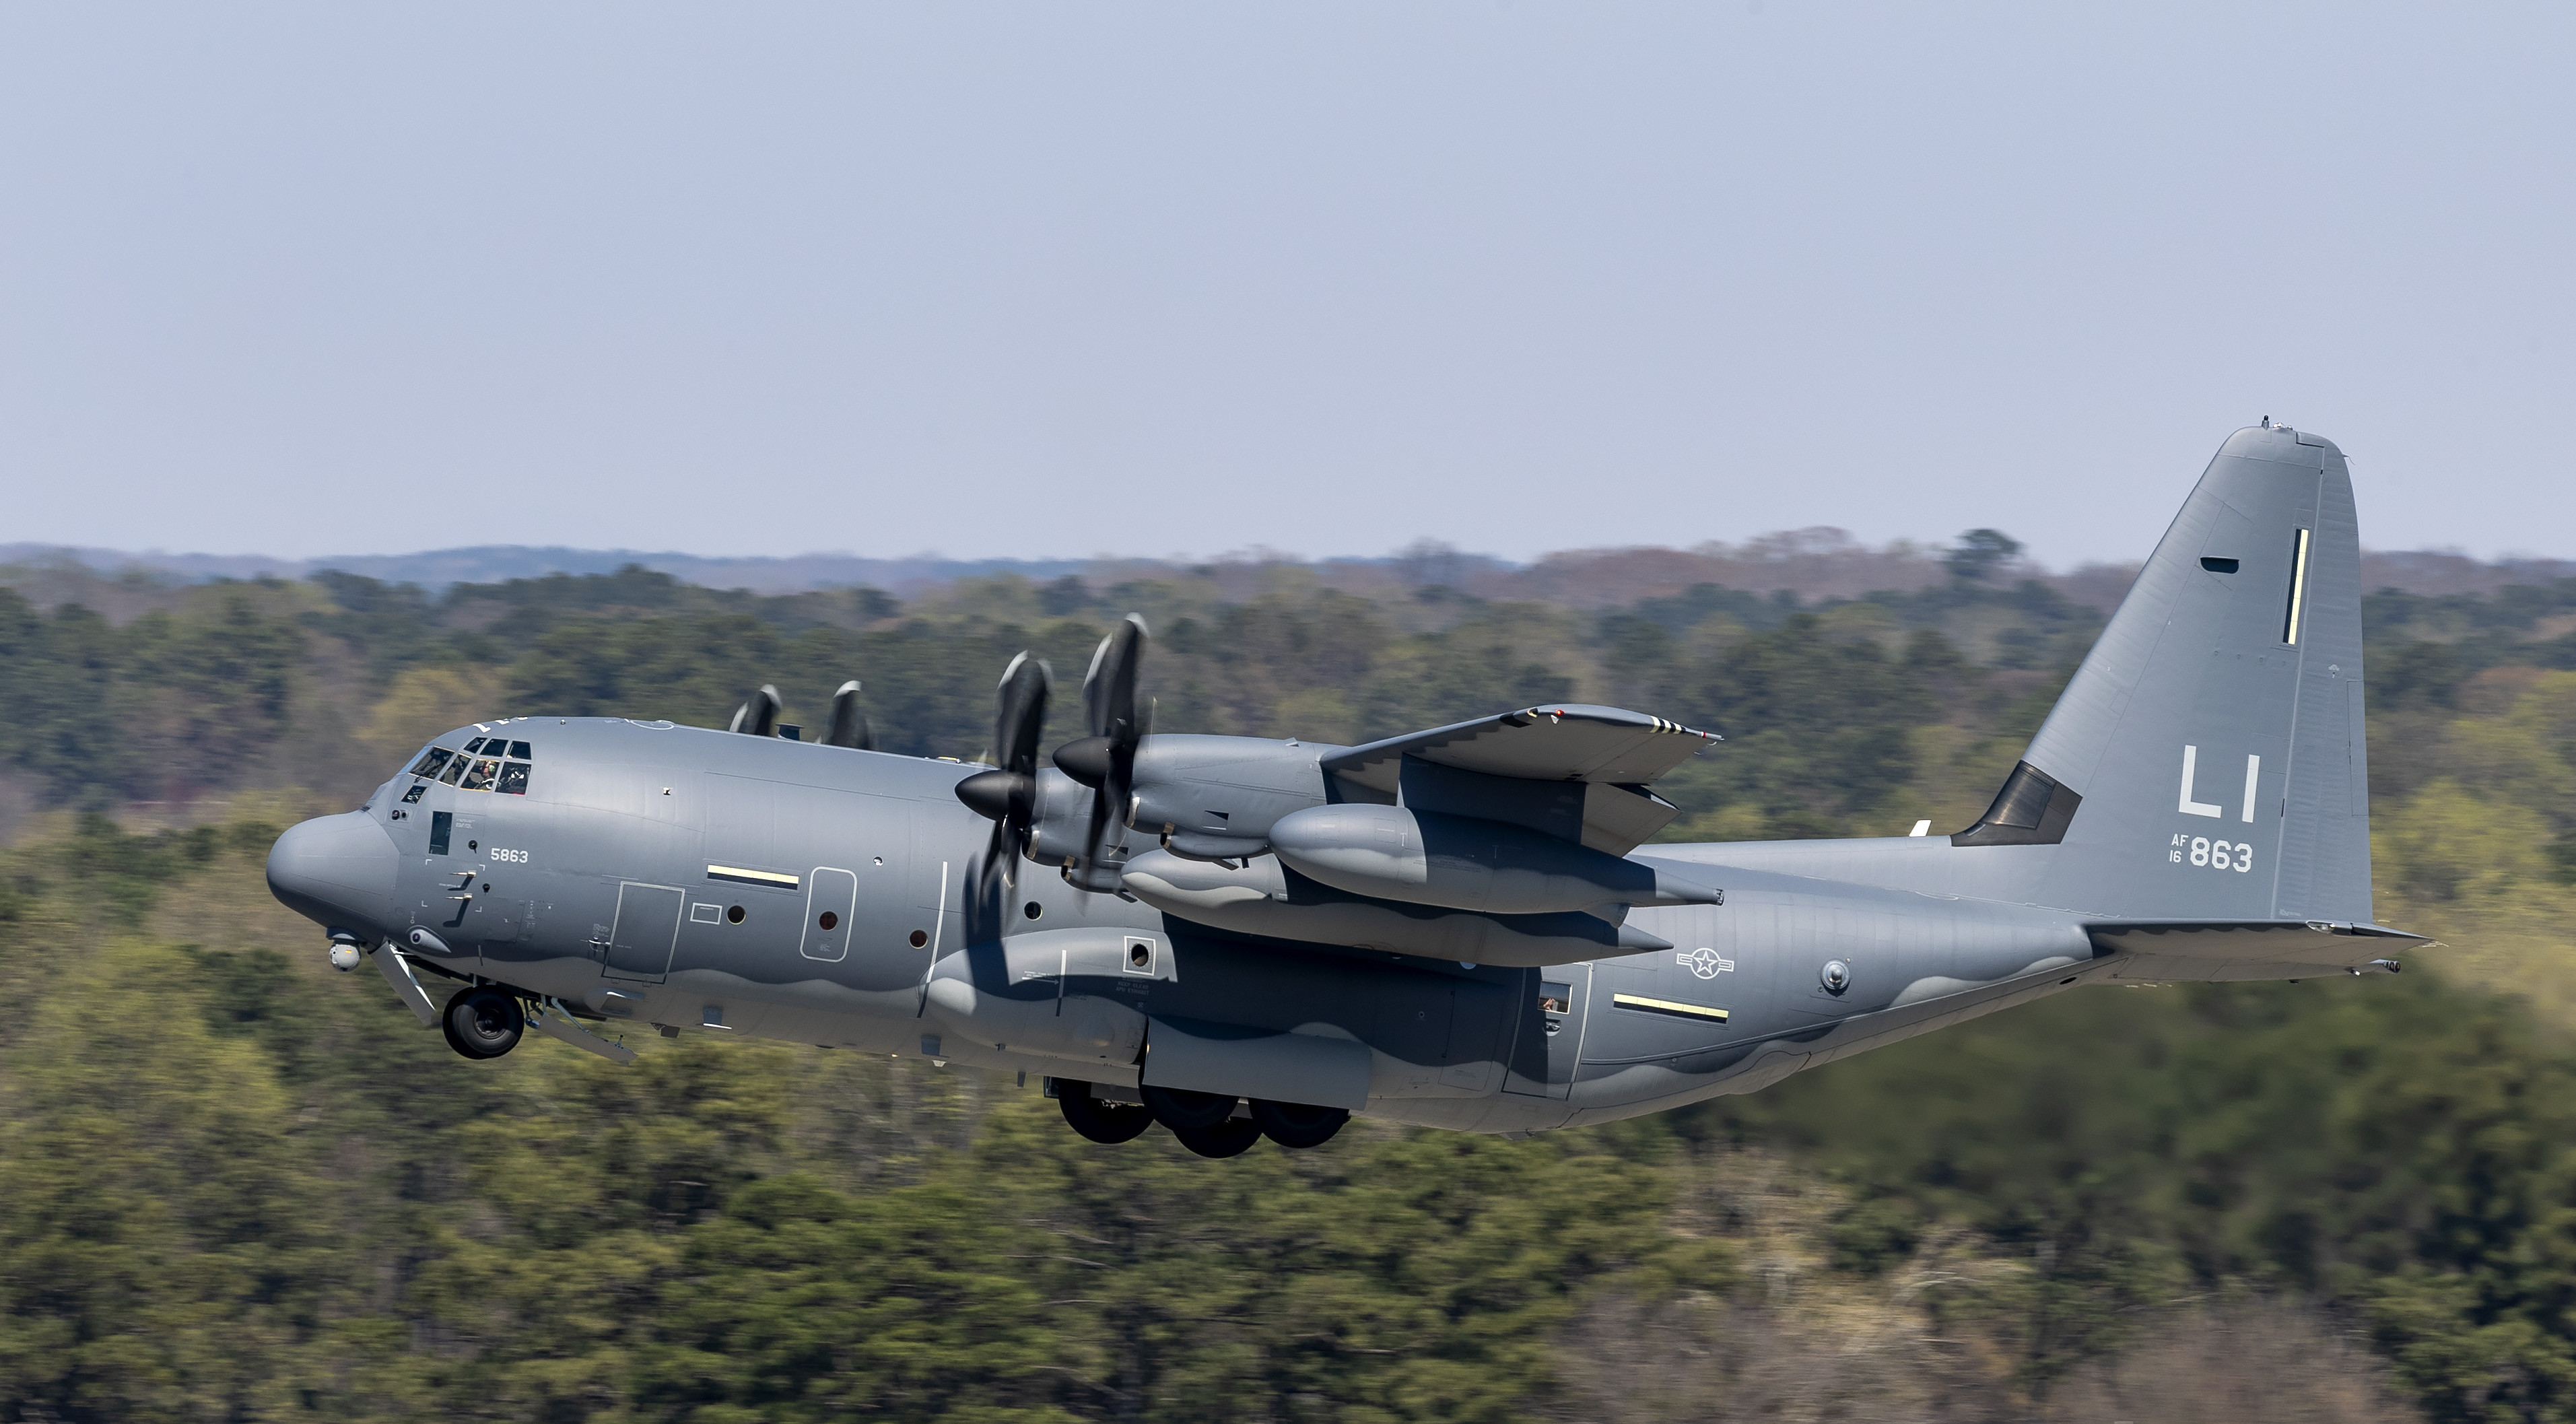 e1f67710d9b The first HC-130J Commando II assigned to the N.Y. Air National Guard's  106th Rescue Wing departs Lockheed Martin's facility in Marietta, Georgia,  ...